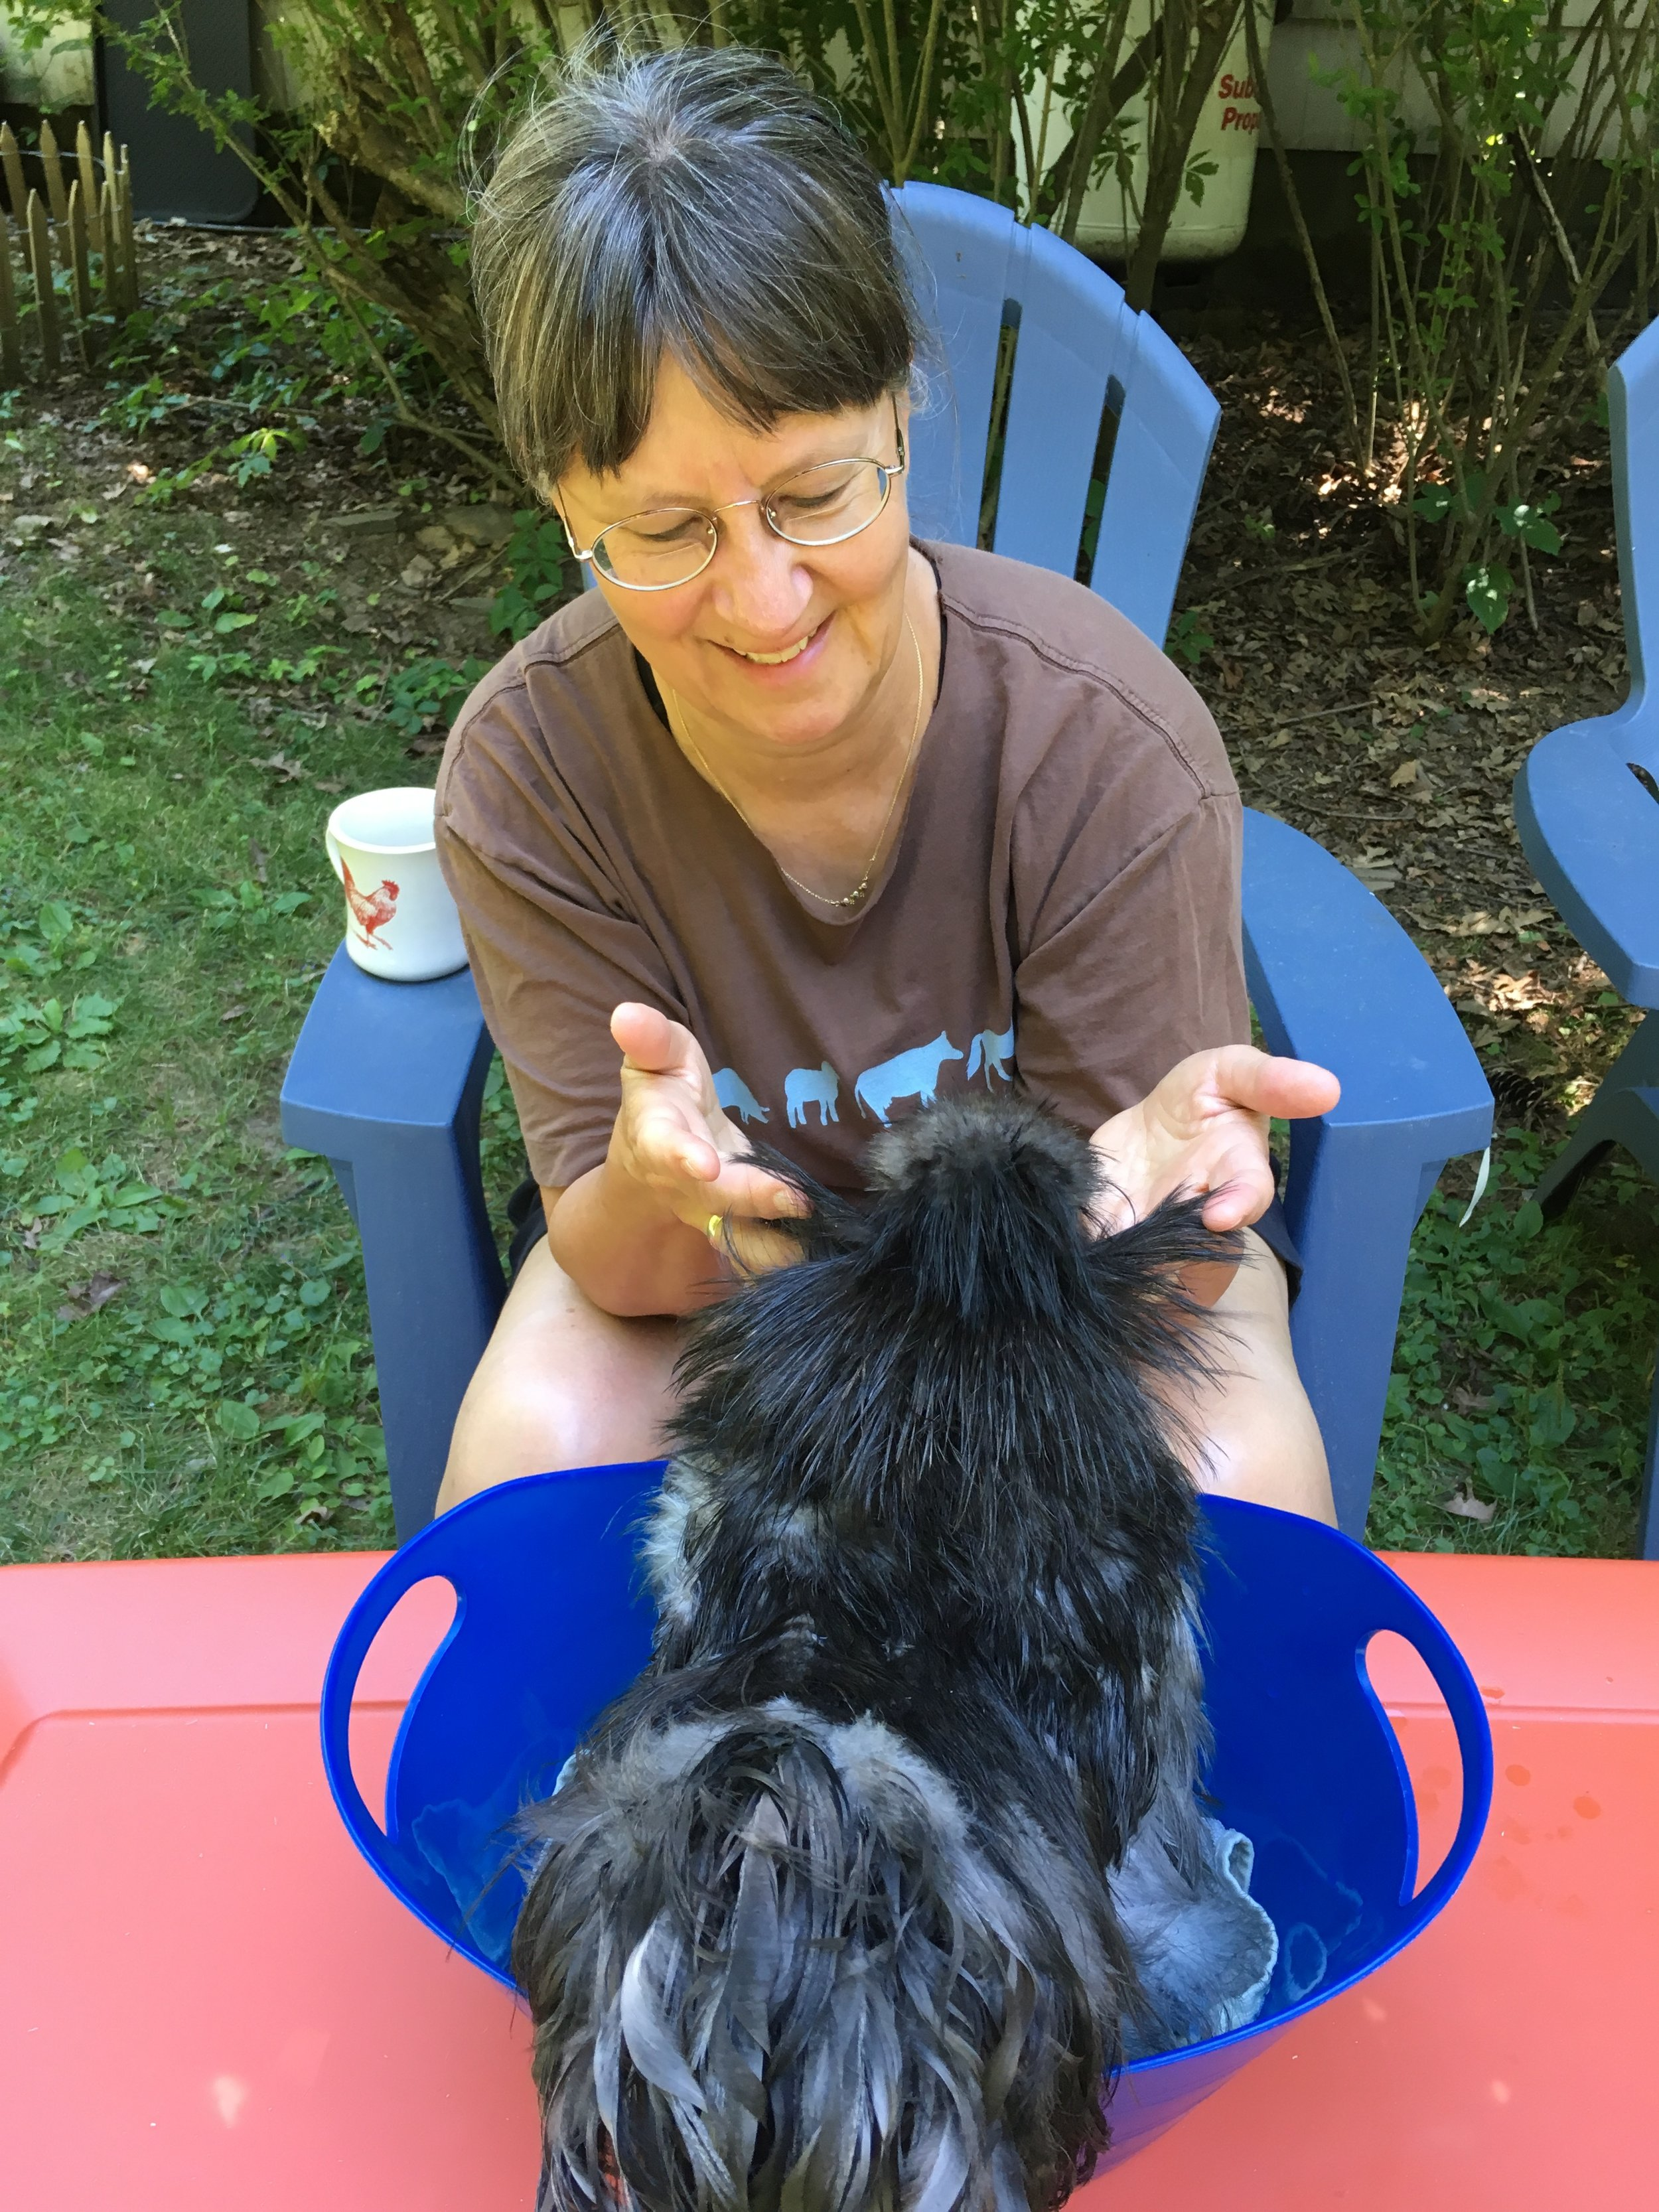 To Appreciate - Little Larry loves his foot baths, especially when Joanne provides feather fluffing as part of the spa package!